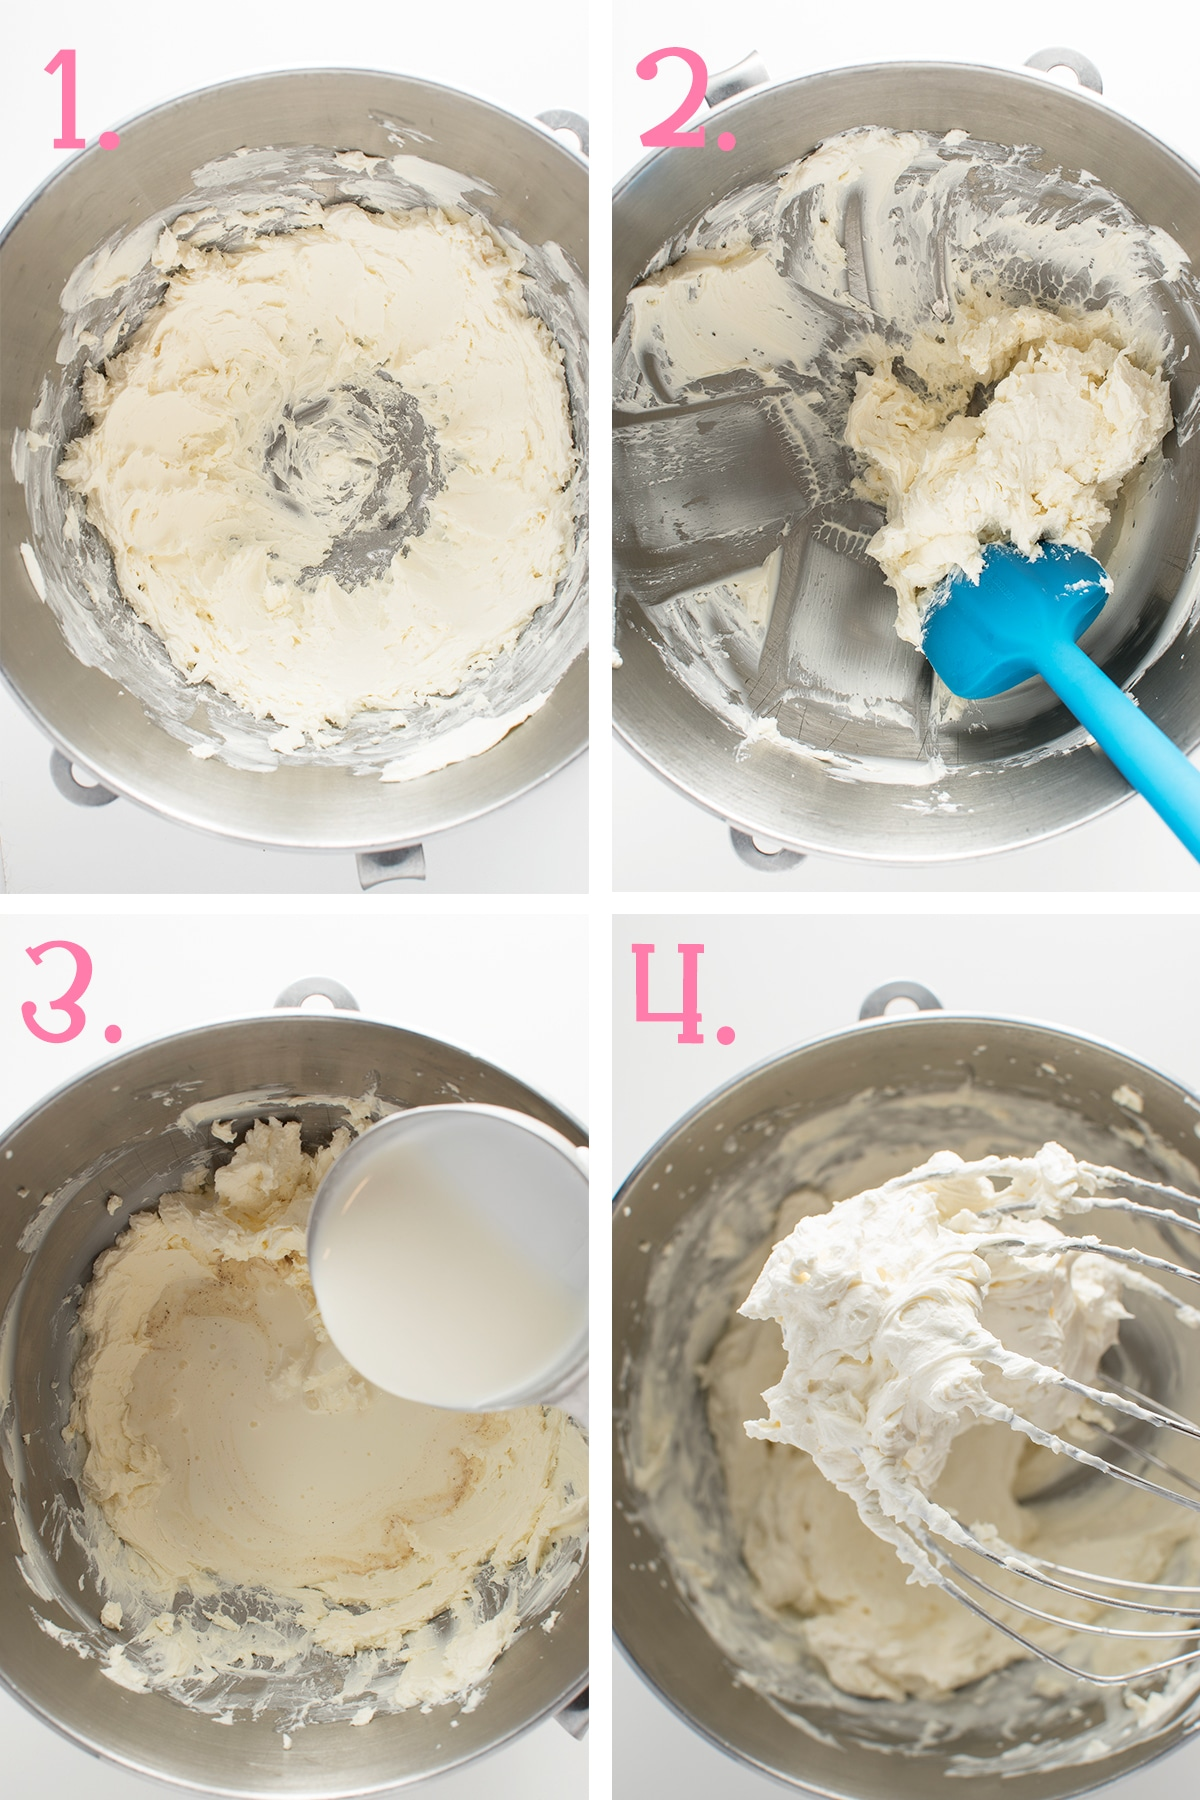 A four panel photograph showing how the whipped cream frosting is made.